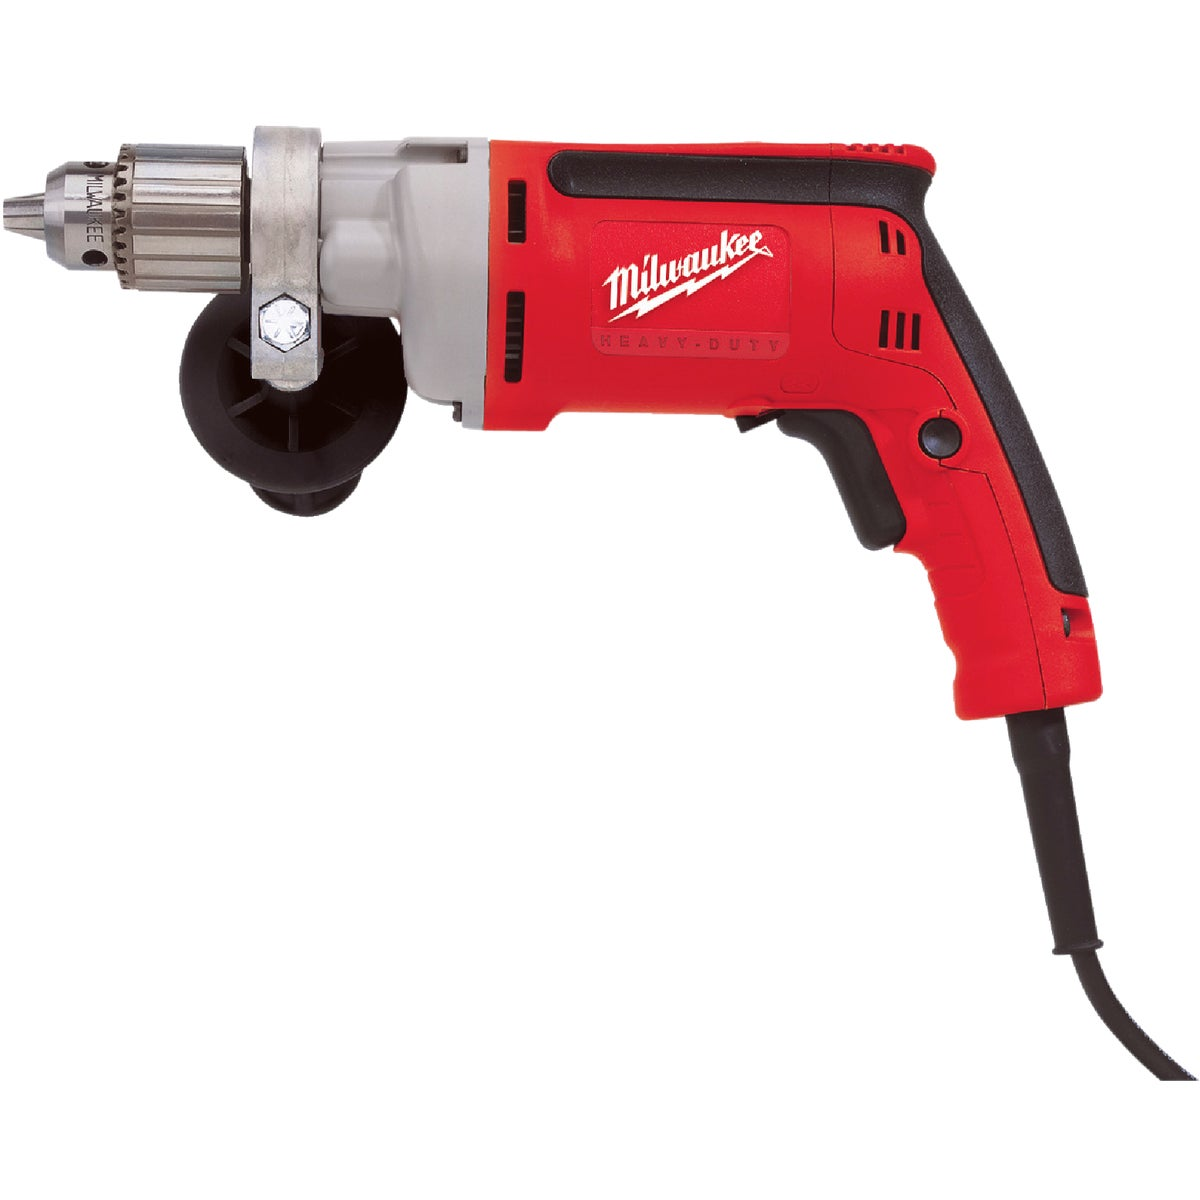 "1/2"" ELECTRIC DRILL - 0300-20 by Milwaukee Elec Tool"